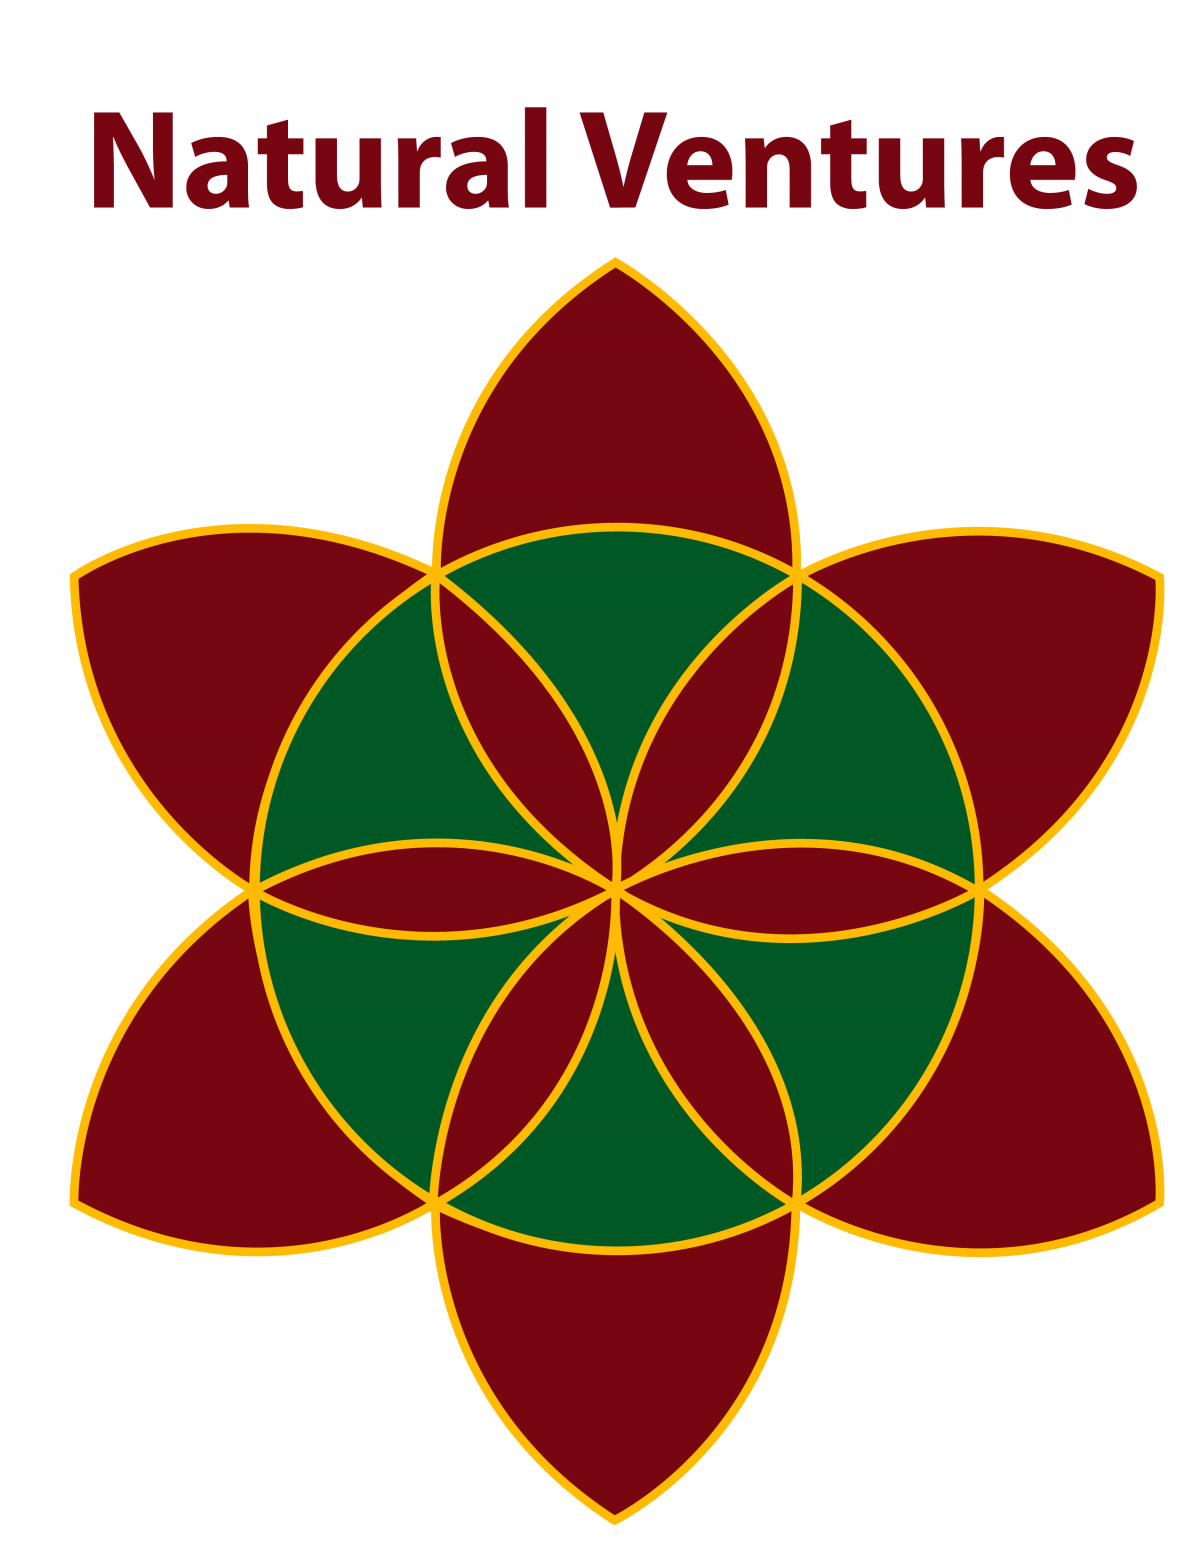 natural ventures_logo_600px_white background-01